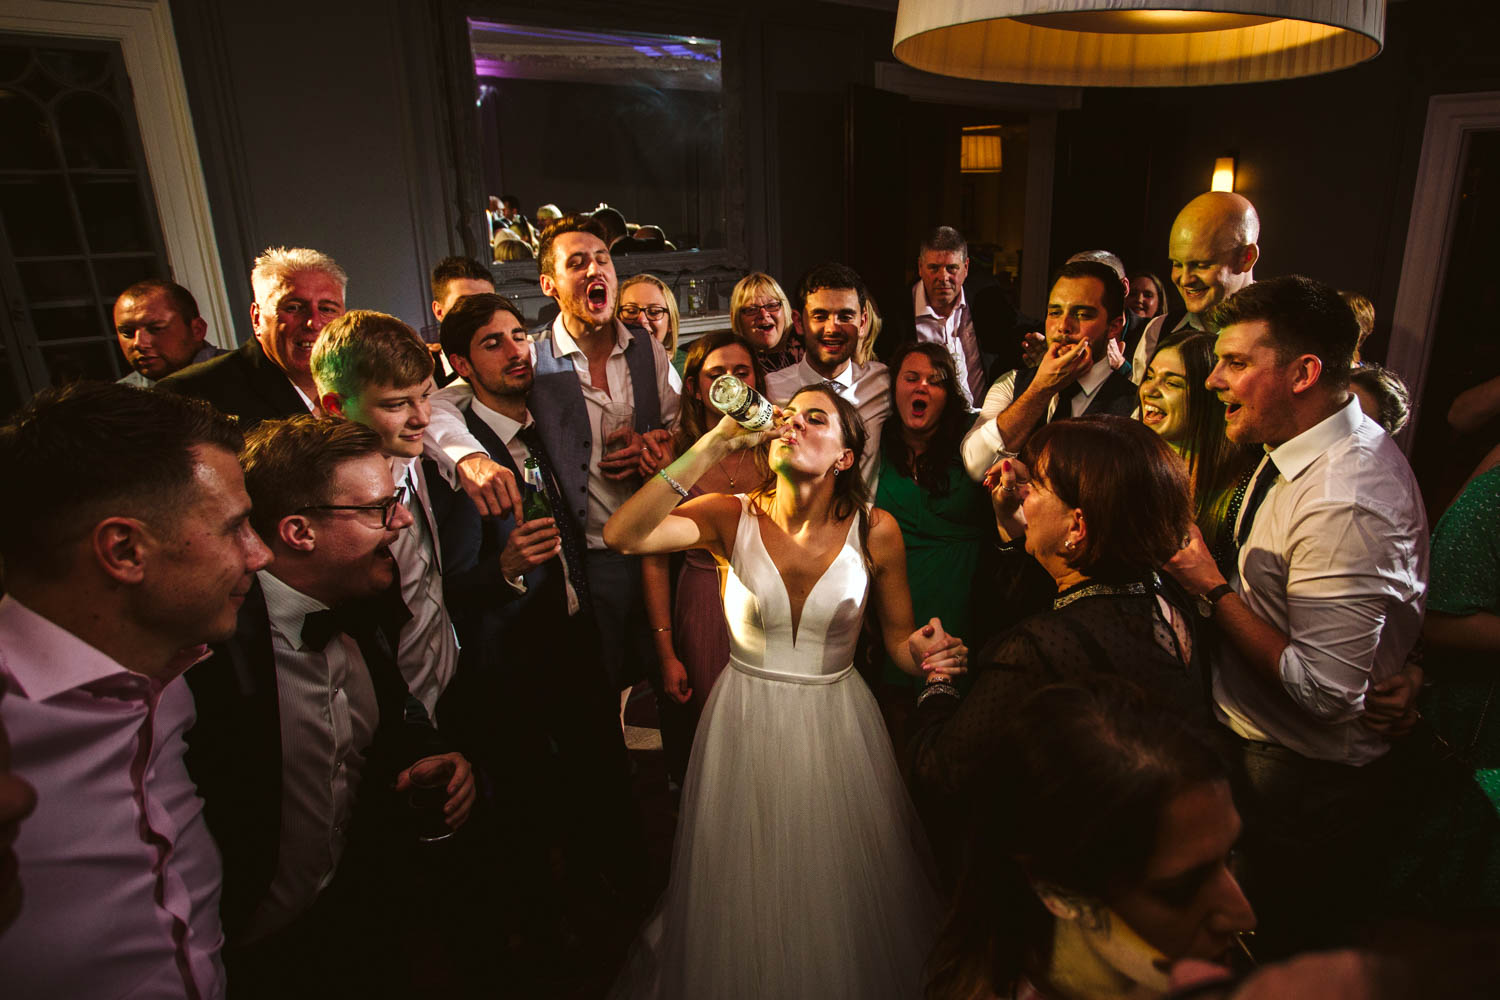 beautiful bride downing a bottle of beer while being cheered